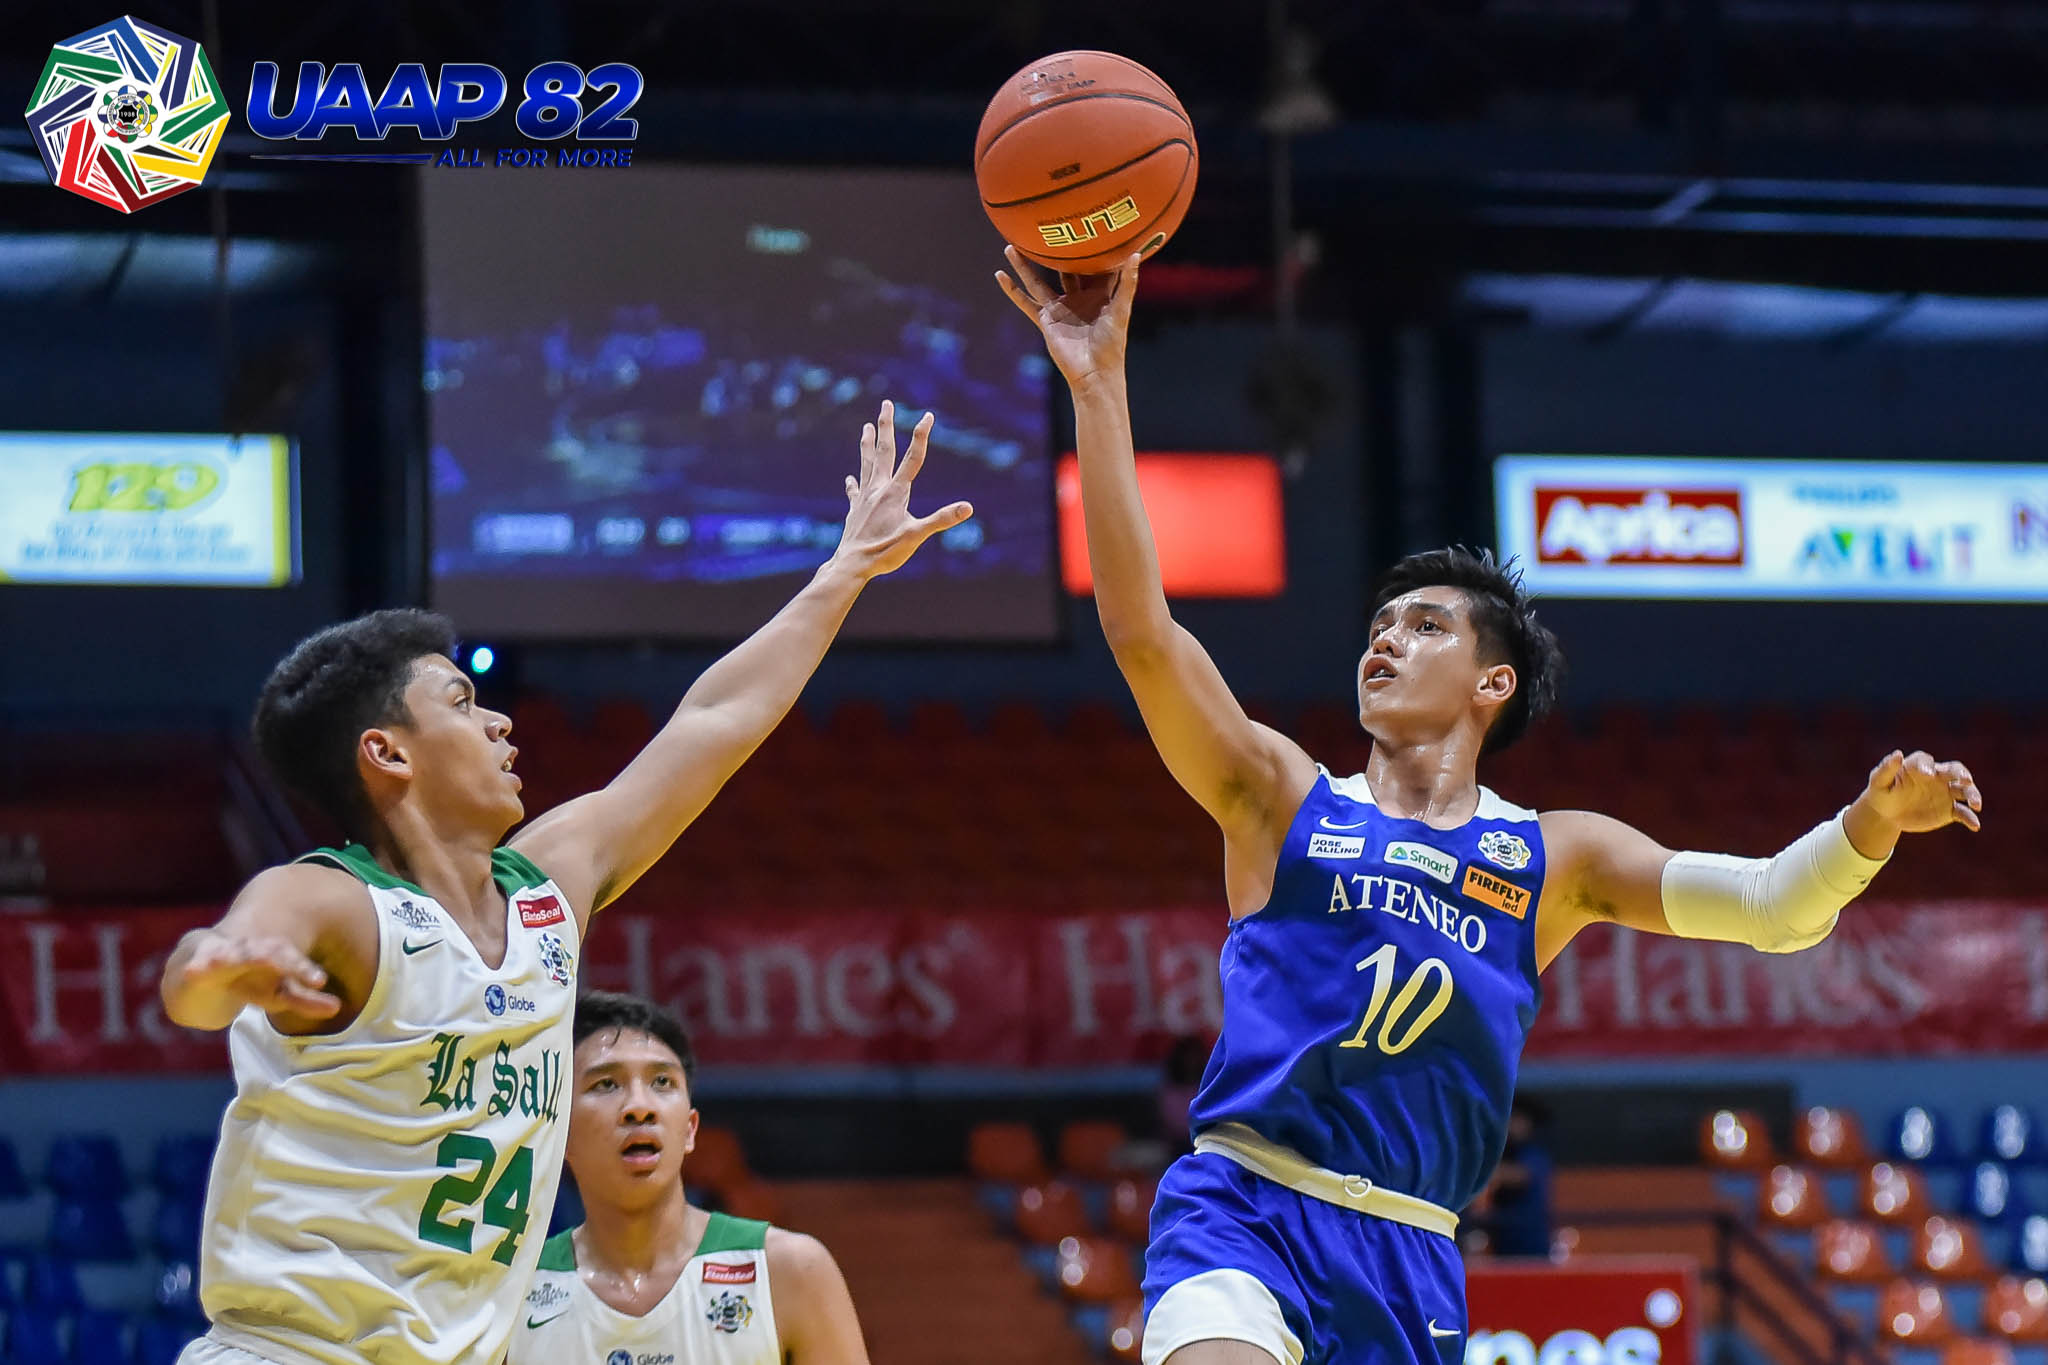 UAAP-82-Jrs-Basketball-ADMU-vs.-DLSZ-Padrigao-0422 Forthsky Padrigao to remain in Ateneo for college ADMU Basketball News UAAP  - philippine sports news